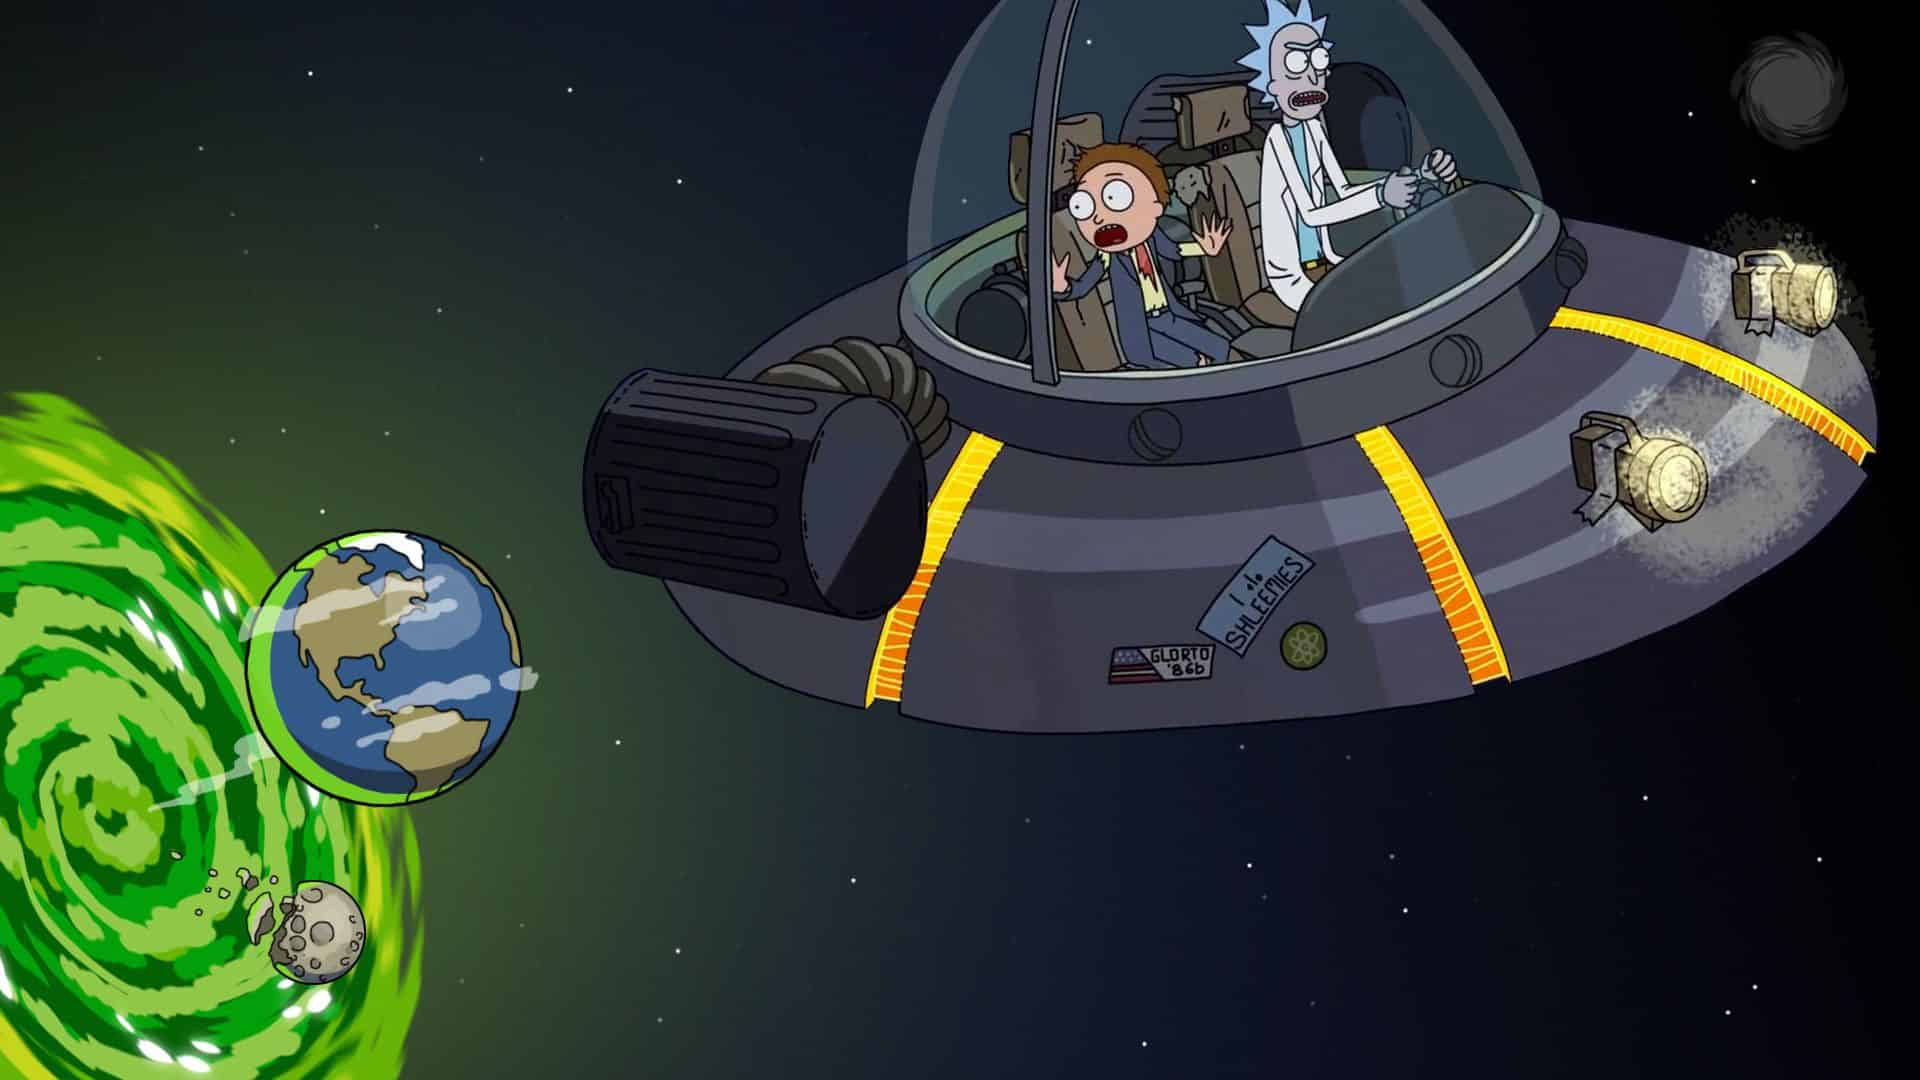 nave materia oscura rick y morty